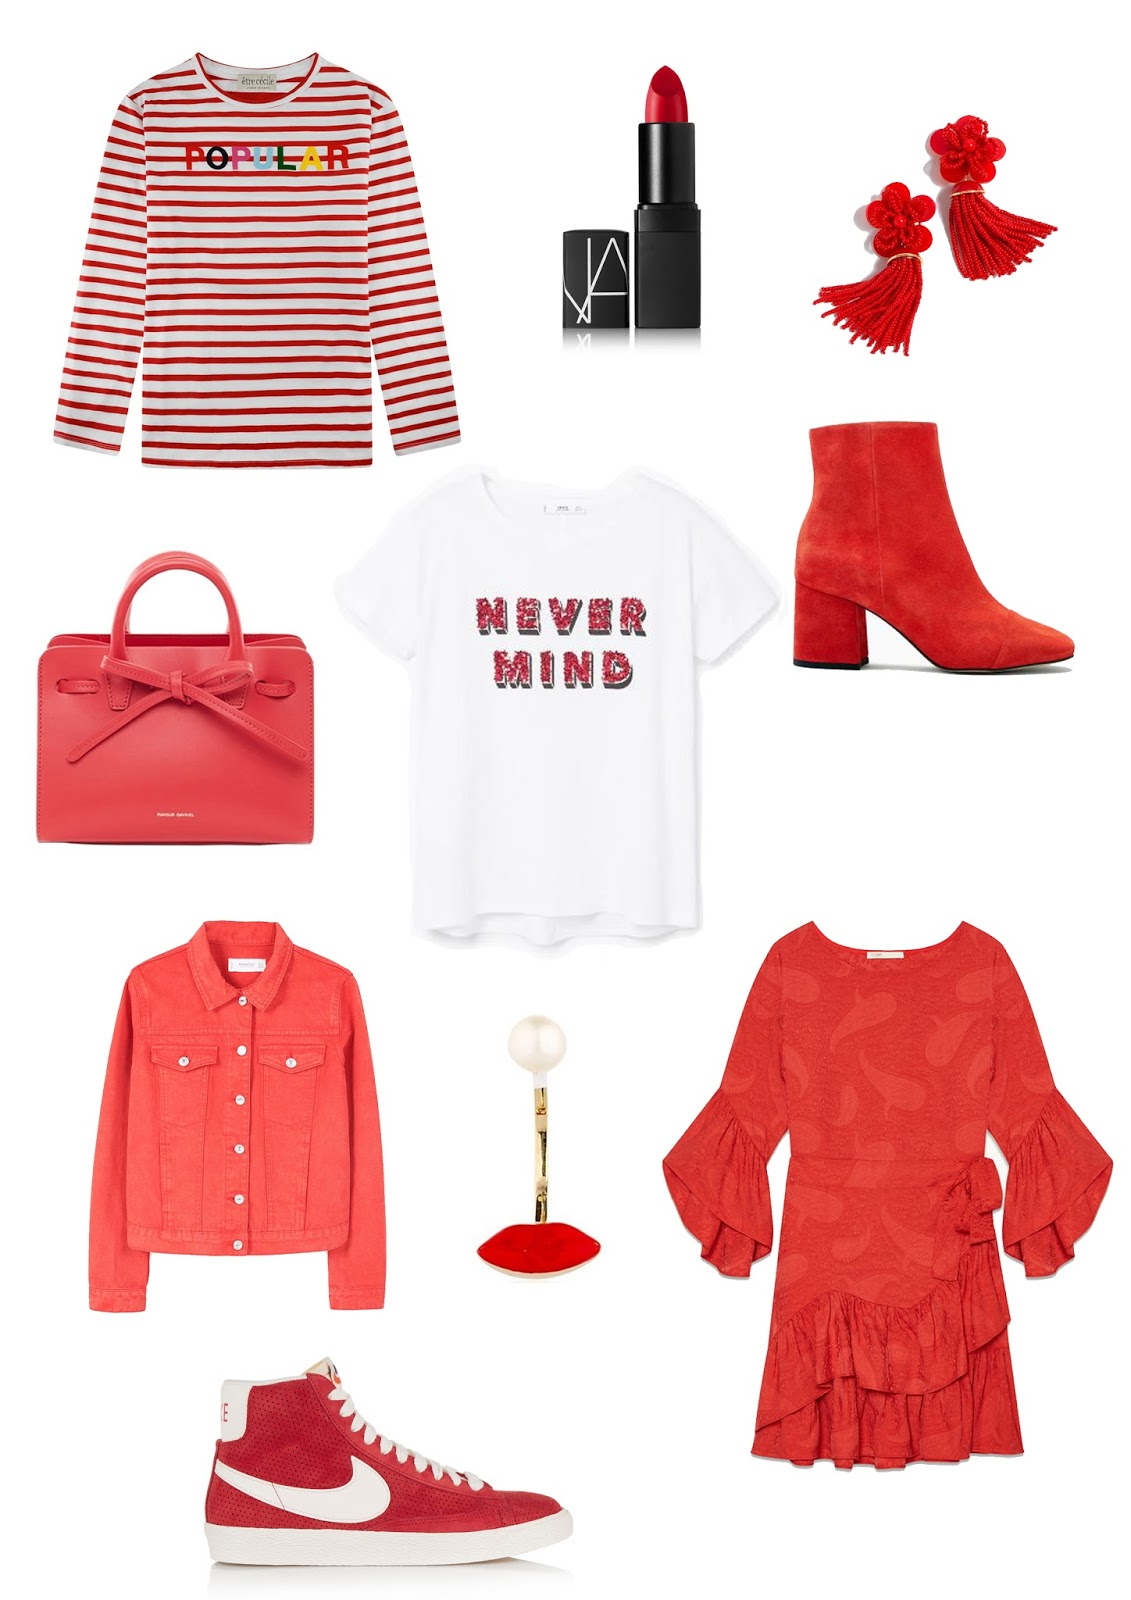 red, trend, ss17, mariniere, nars, jungle red, maje, ruffle dress, red boots, next, j crew, statement earrings, mansur gavriel, mango